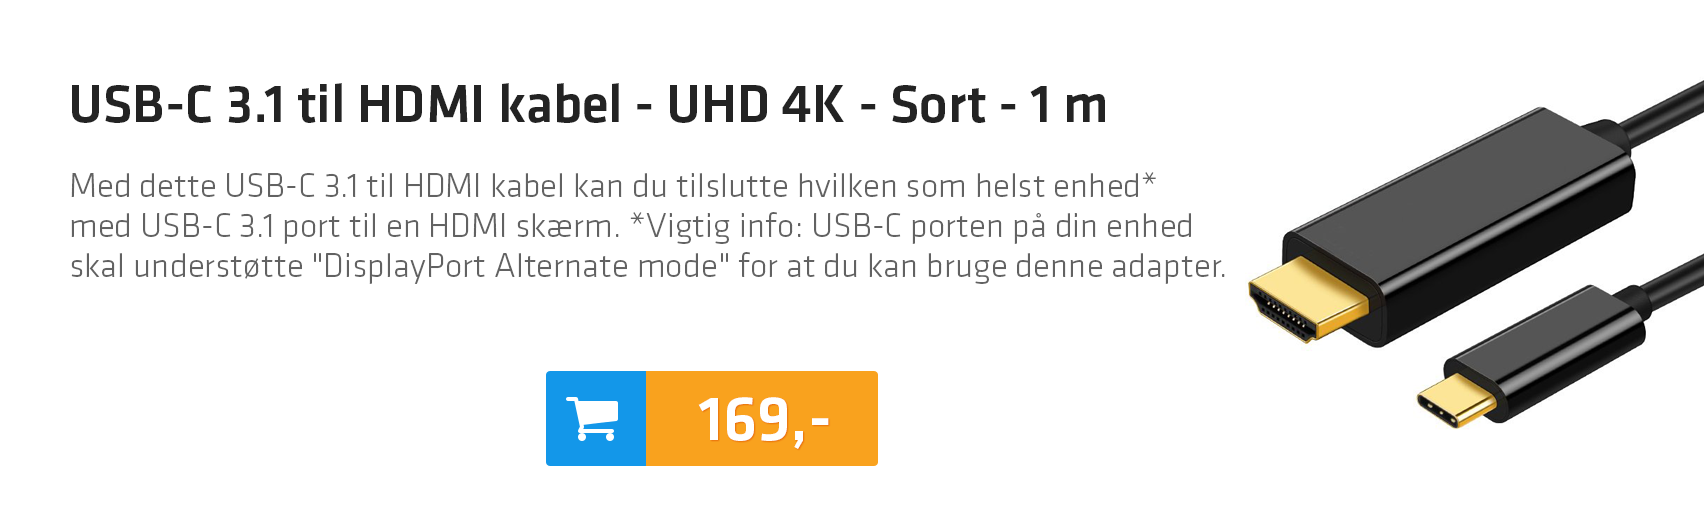 USB-C 3.1 til HDMI kabel - UHD 4K - Sort - 1 m